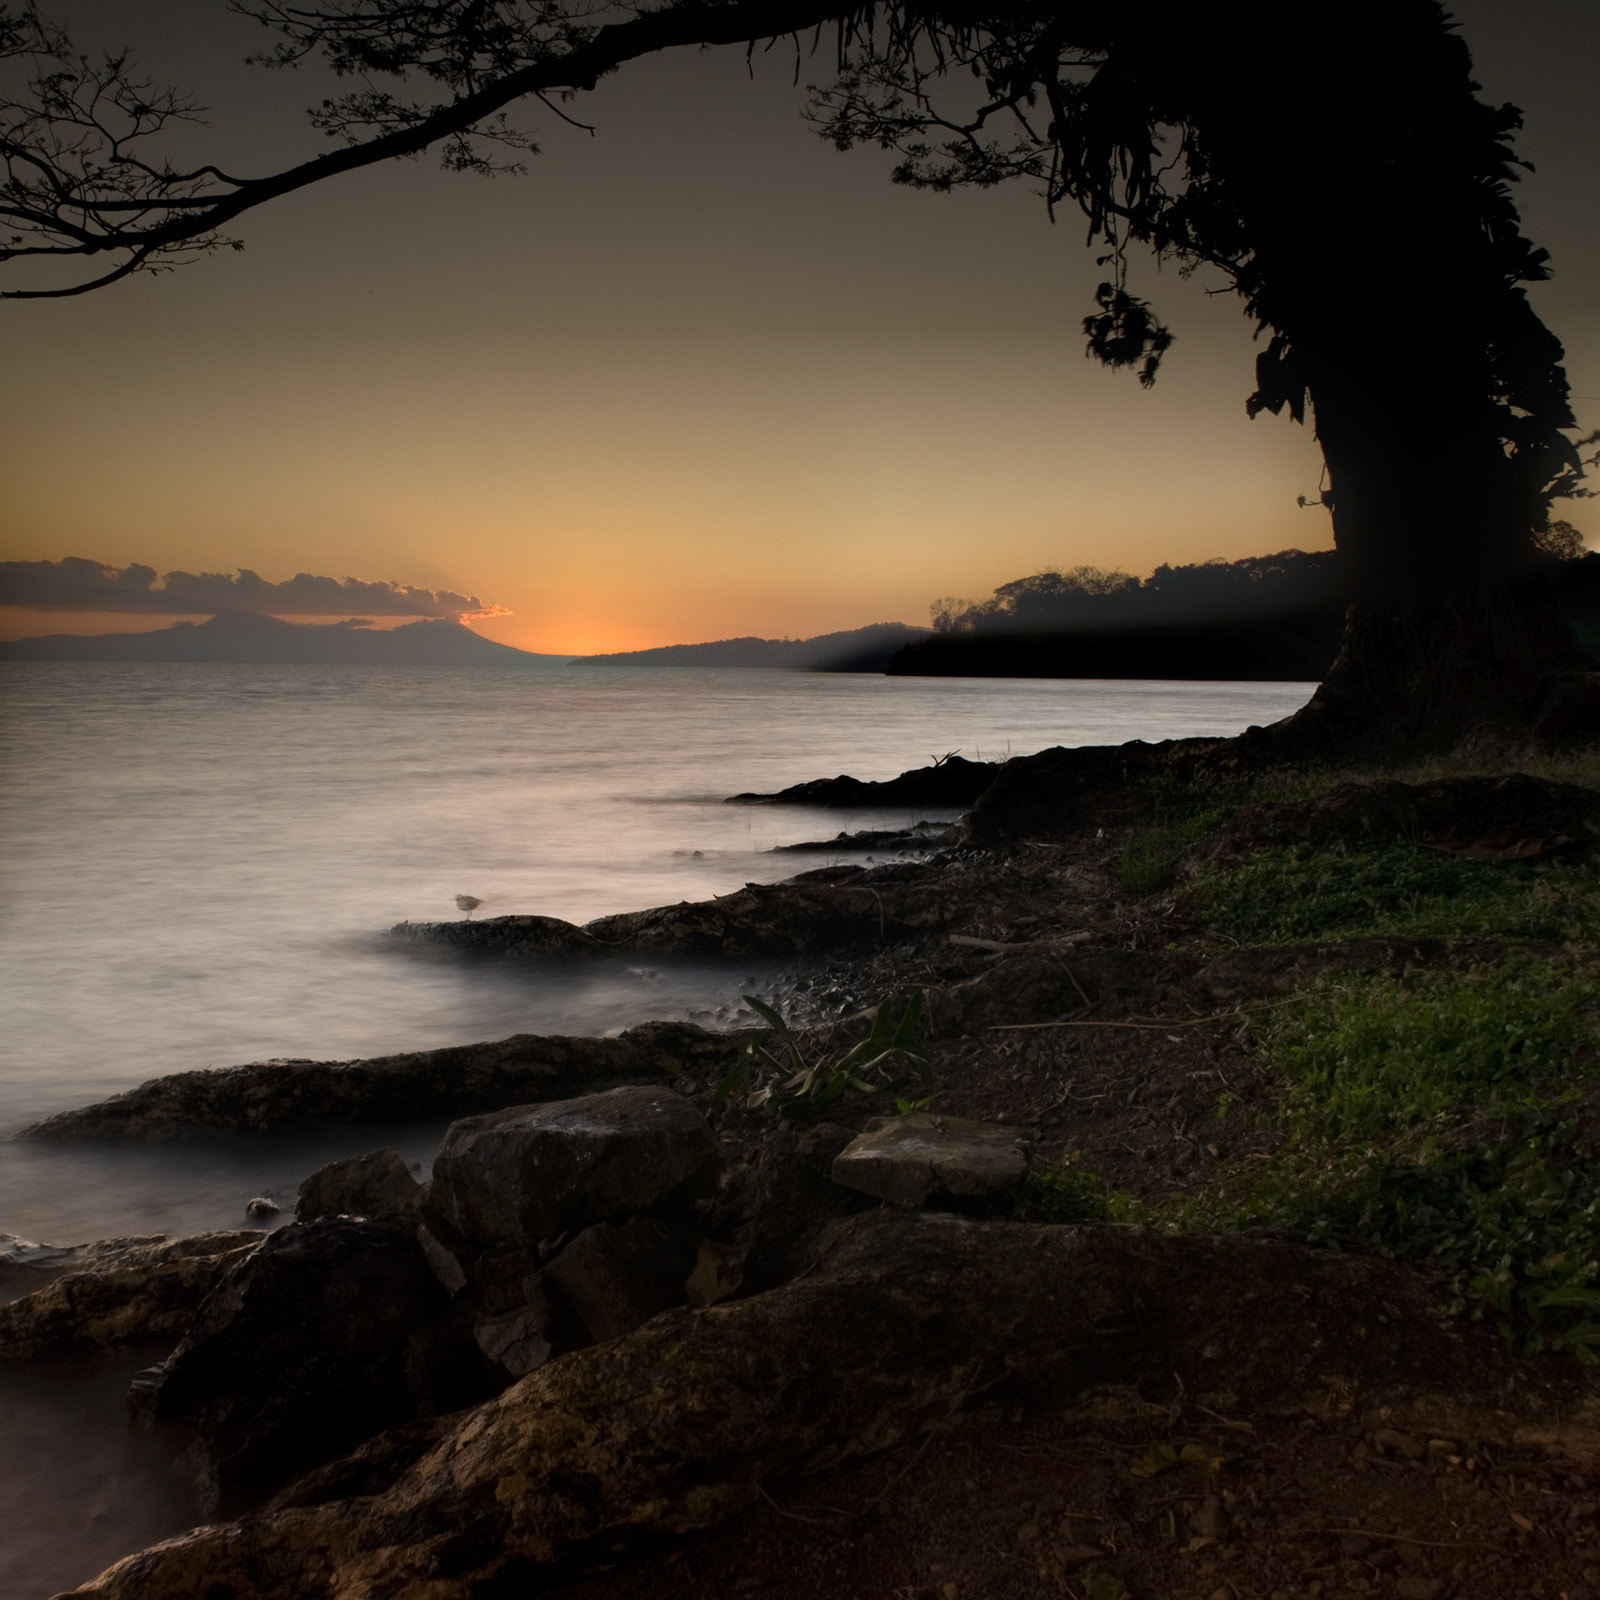 Photograph Sunset on Solentiname by Steven House on 500px